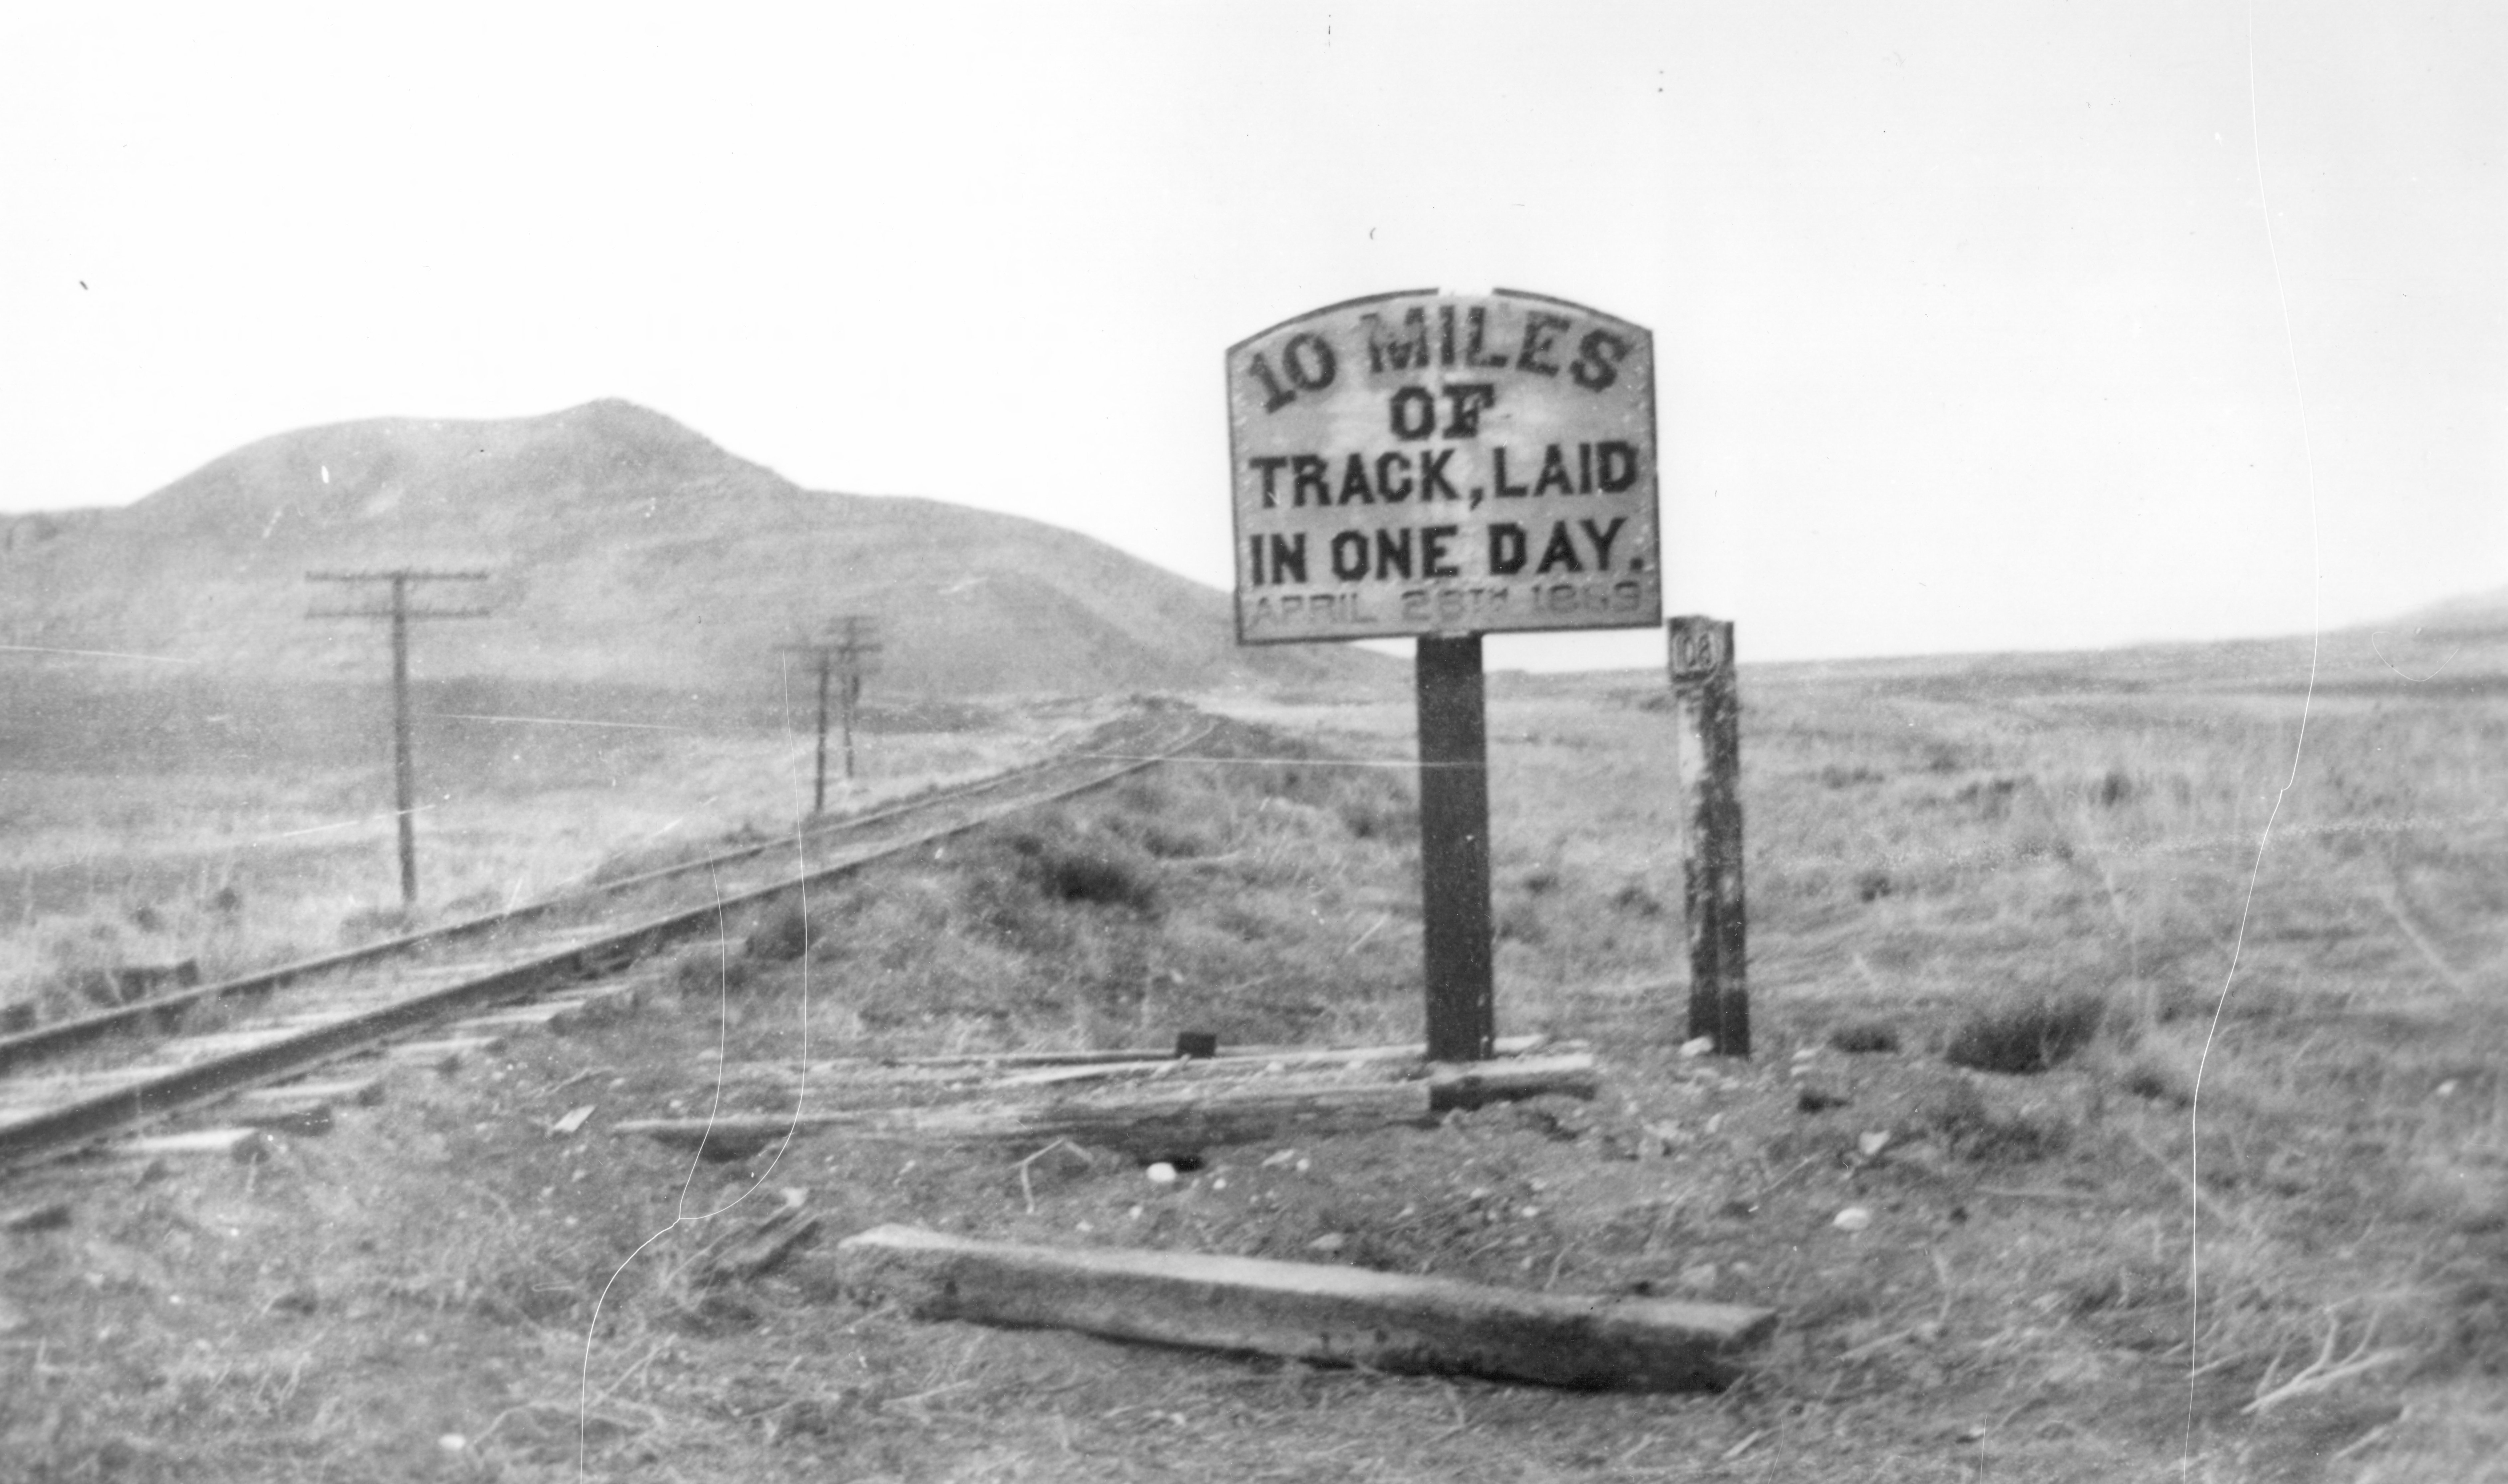 """A sign marks a construction site of Central Pacific Railroad, reading: """"10 miles of track, laid in one day, April 28th, 1869."""""""